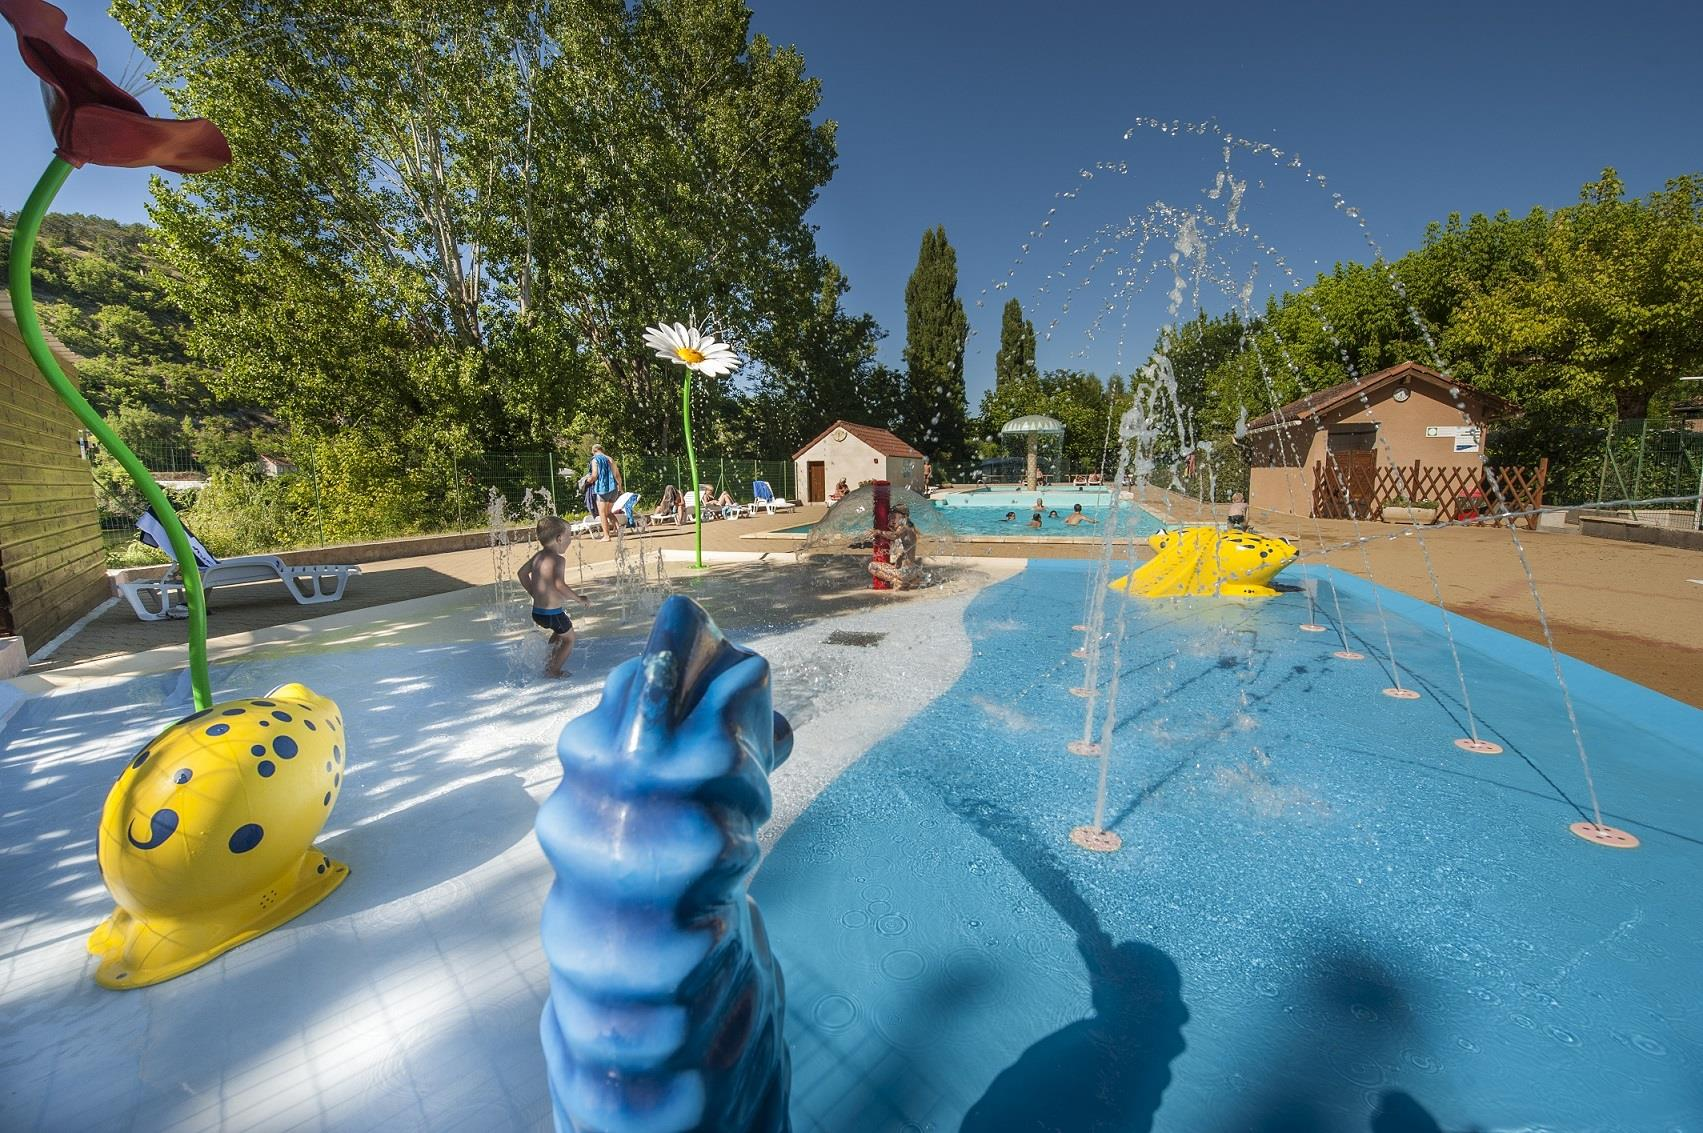 Bedrijf Camping RIVIERE DE CABESSUT - CAHORS